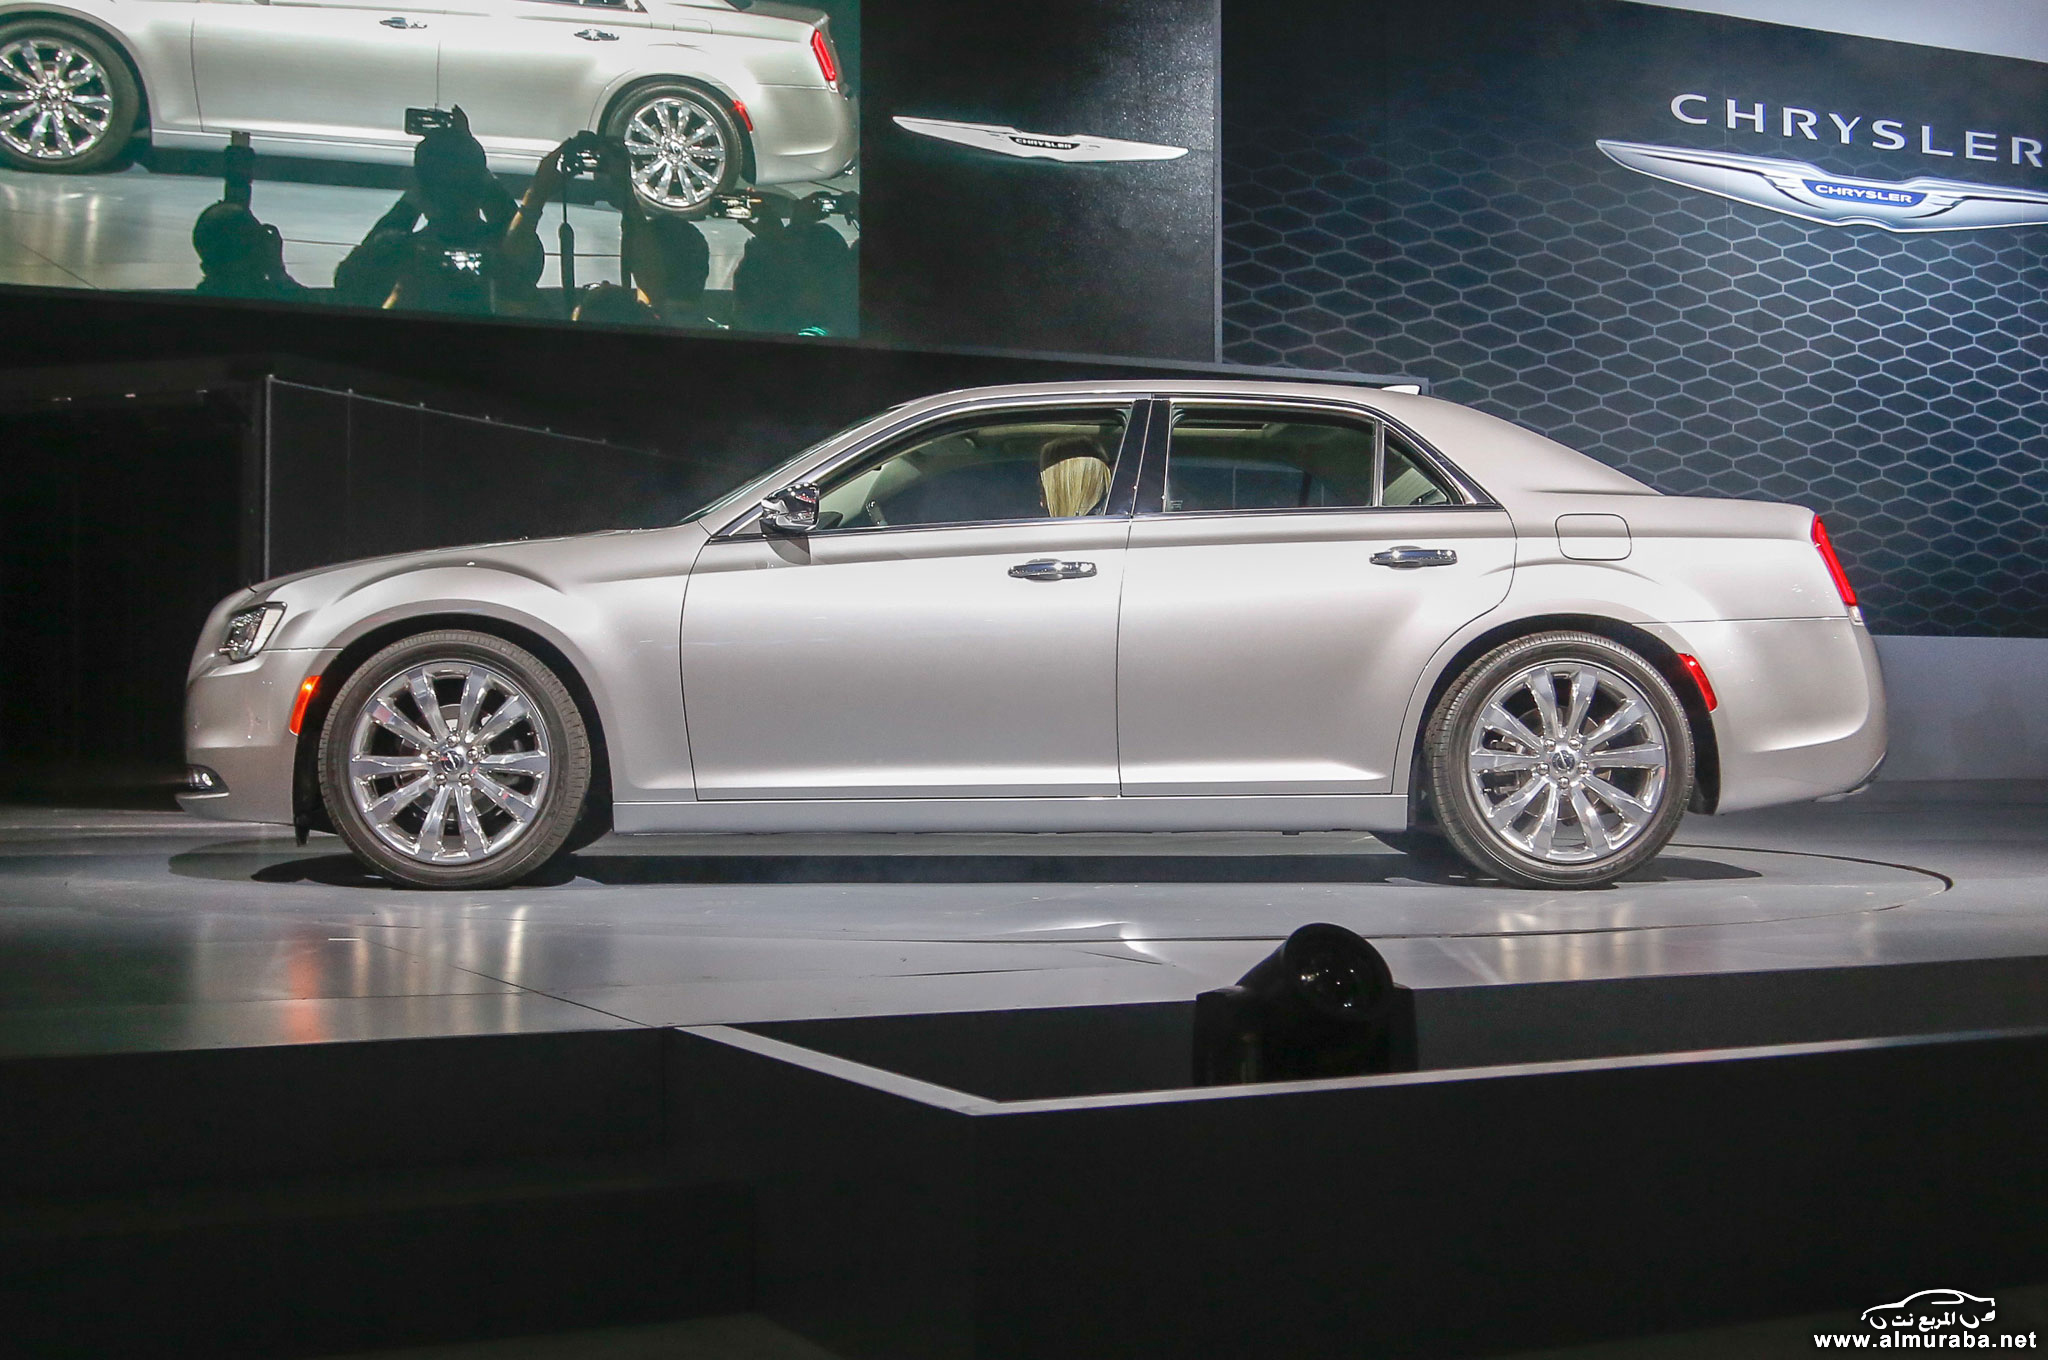 2015-chrysler-300-side-view-on-stage